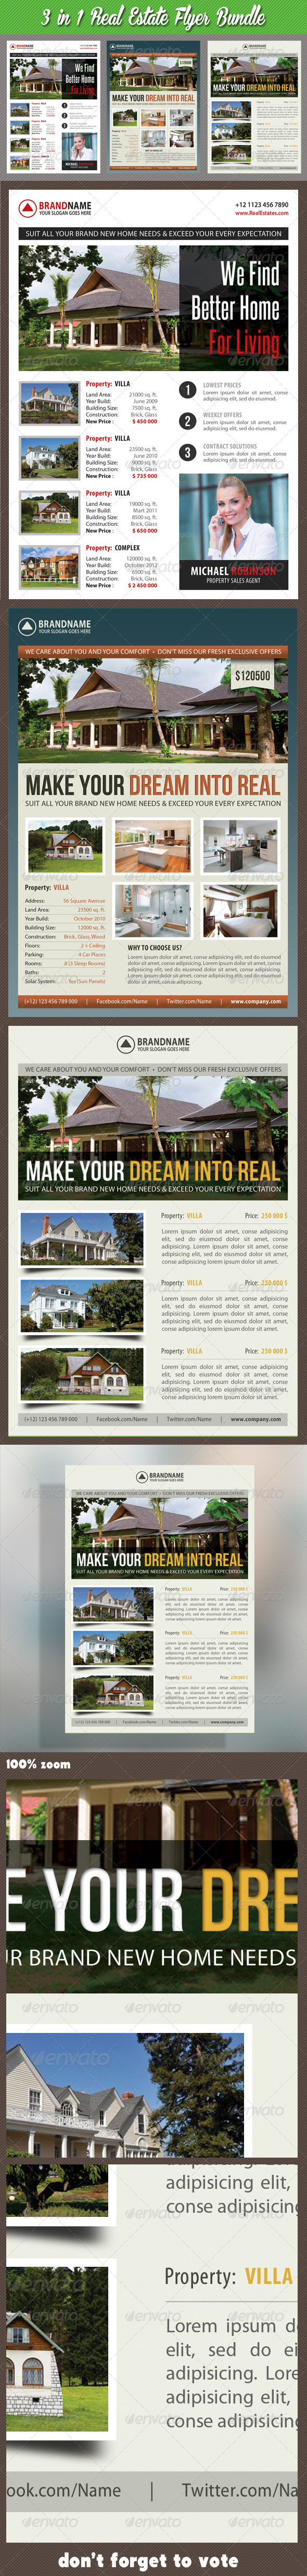 GraphicRiver 3 in 1 Real Estate Corporate Flyer Bundle 03 7489305